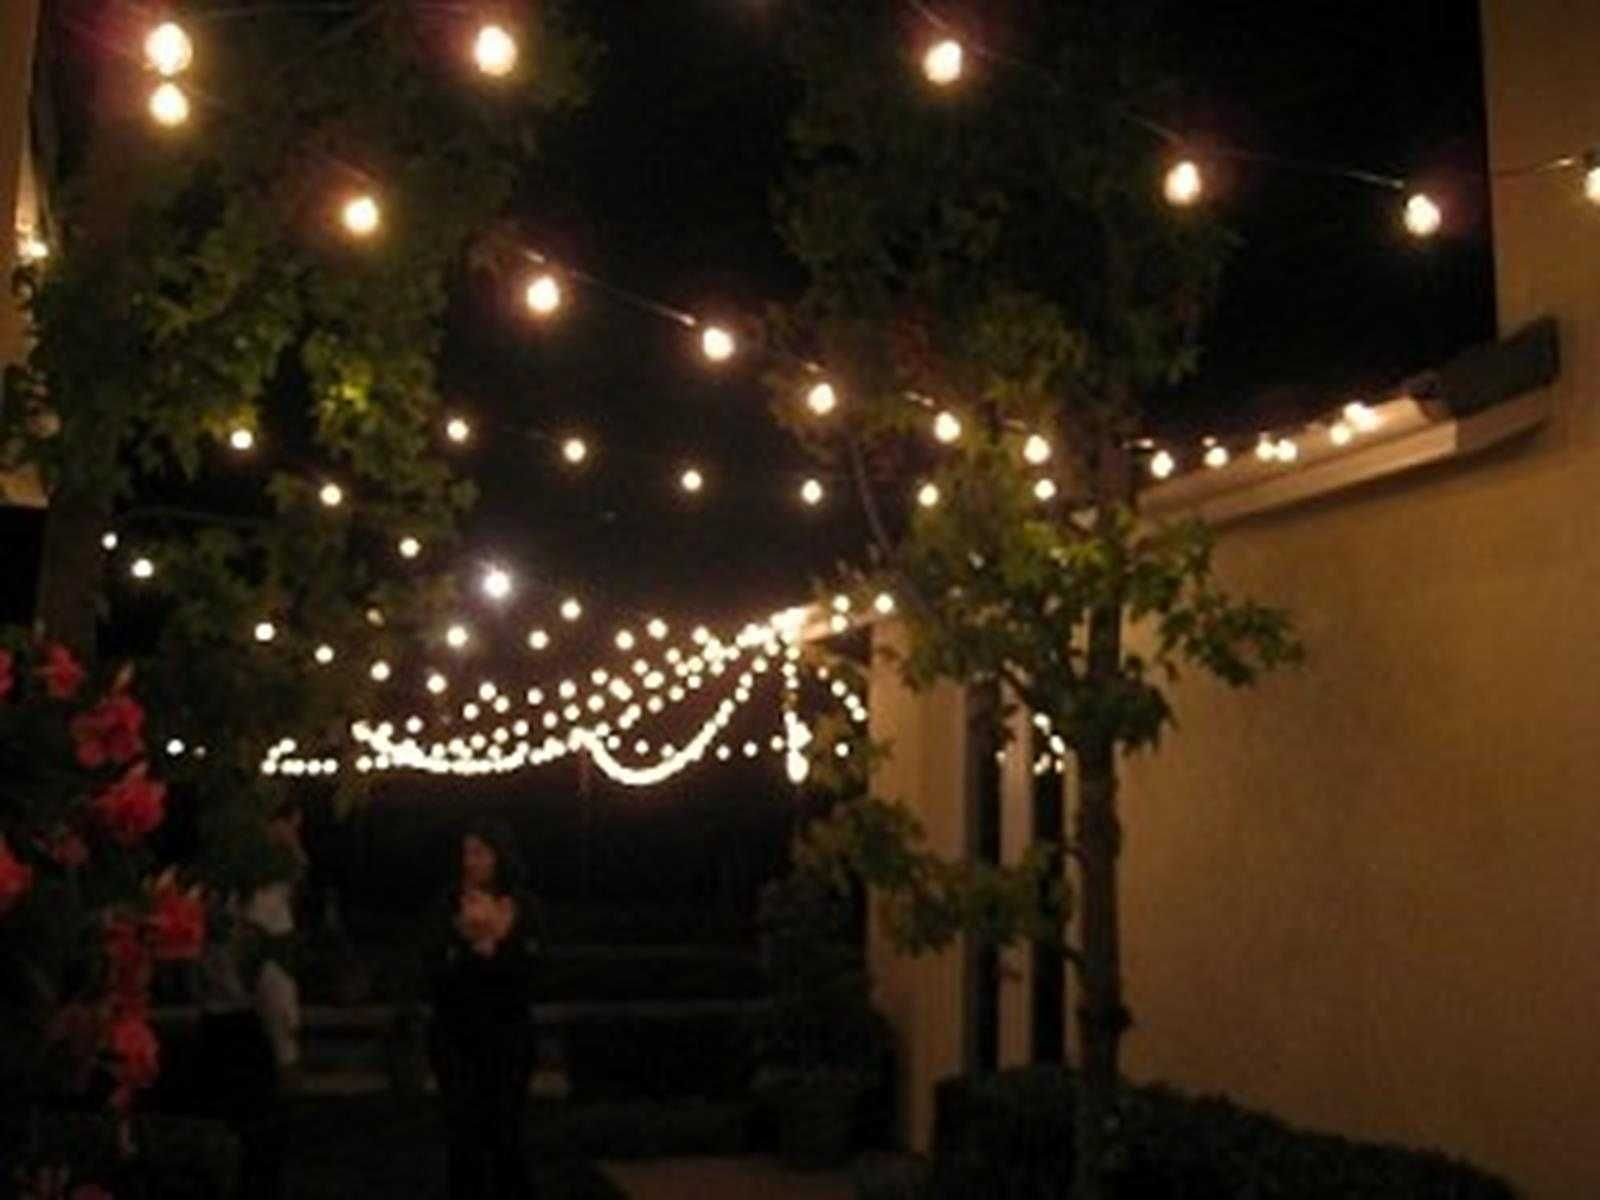 Lights Outdoor String Gallery s